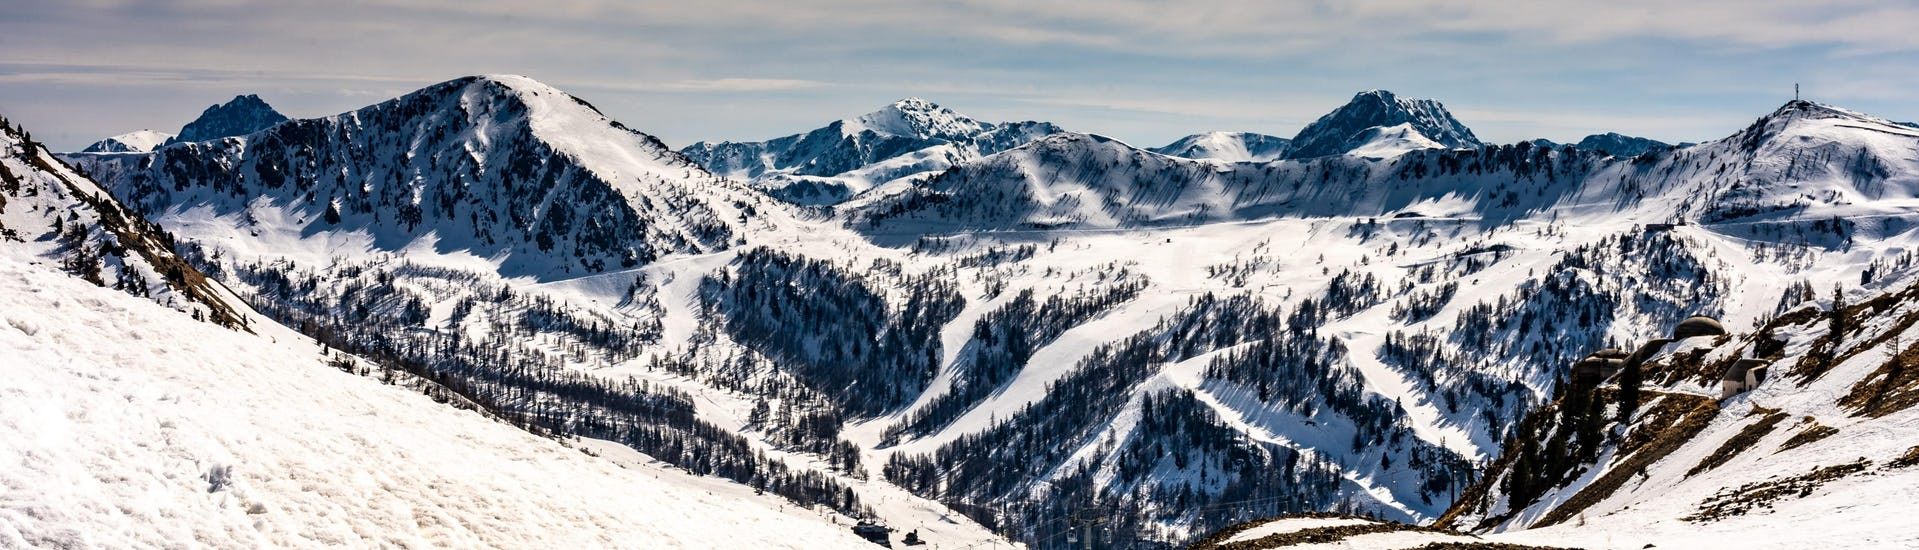 A panoramic view of the mountain peaks in the French ski resort of Isola 2000, where local ski schools offer a variety of ski lessons for people who want to learn to ski.